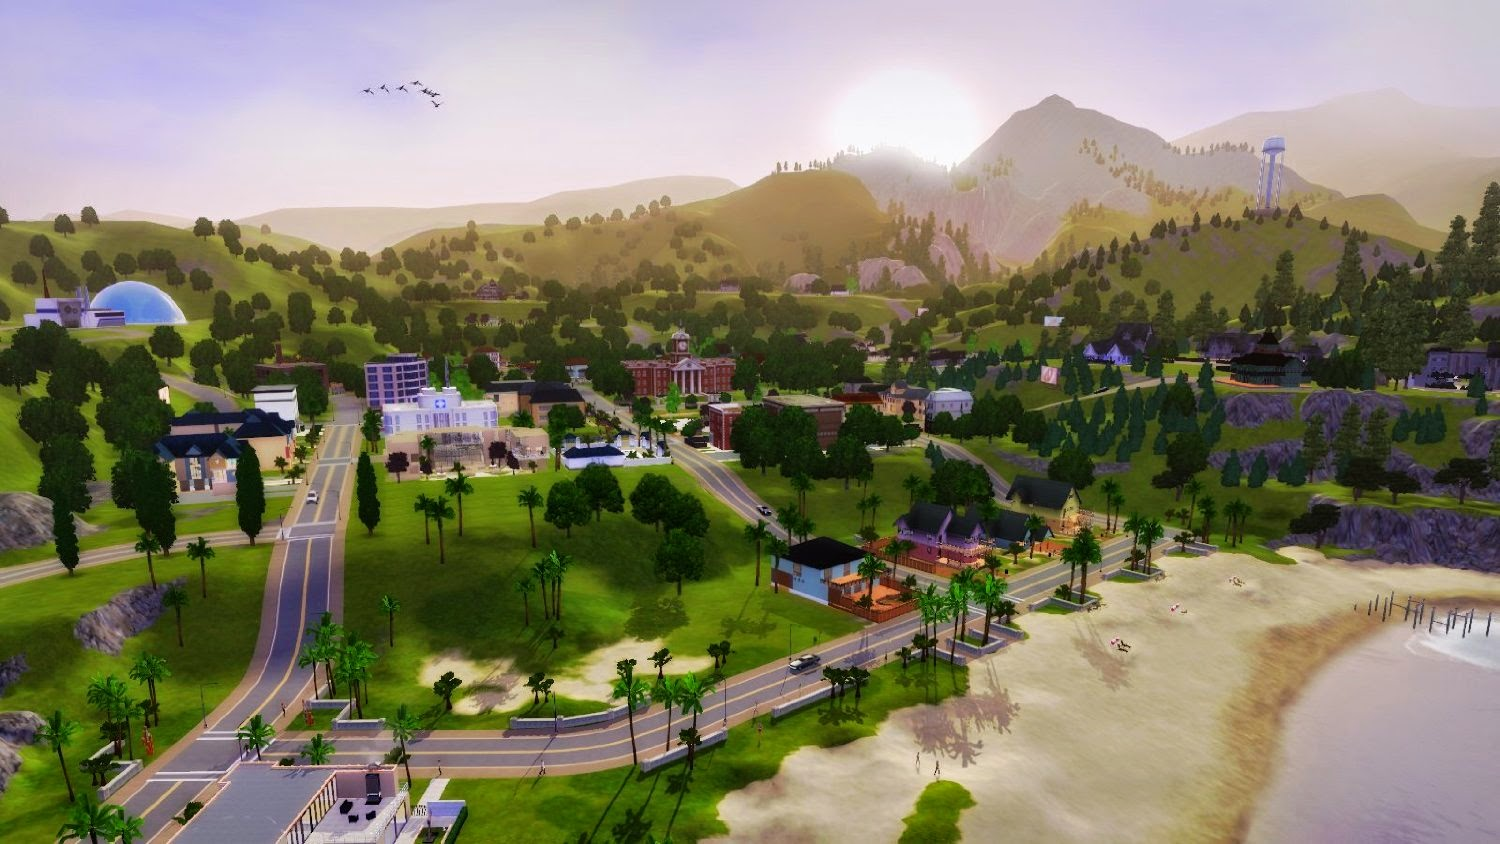 How to install the sims 3 starter pack on pc - The Sims 3 Late Night Expansion Pack